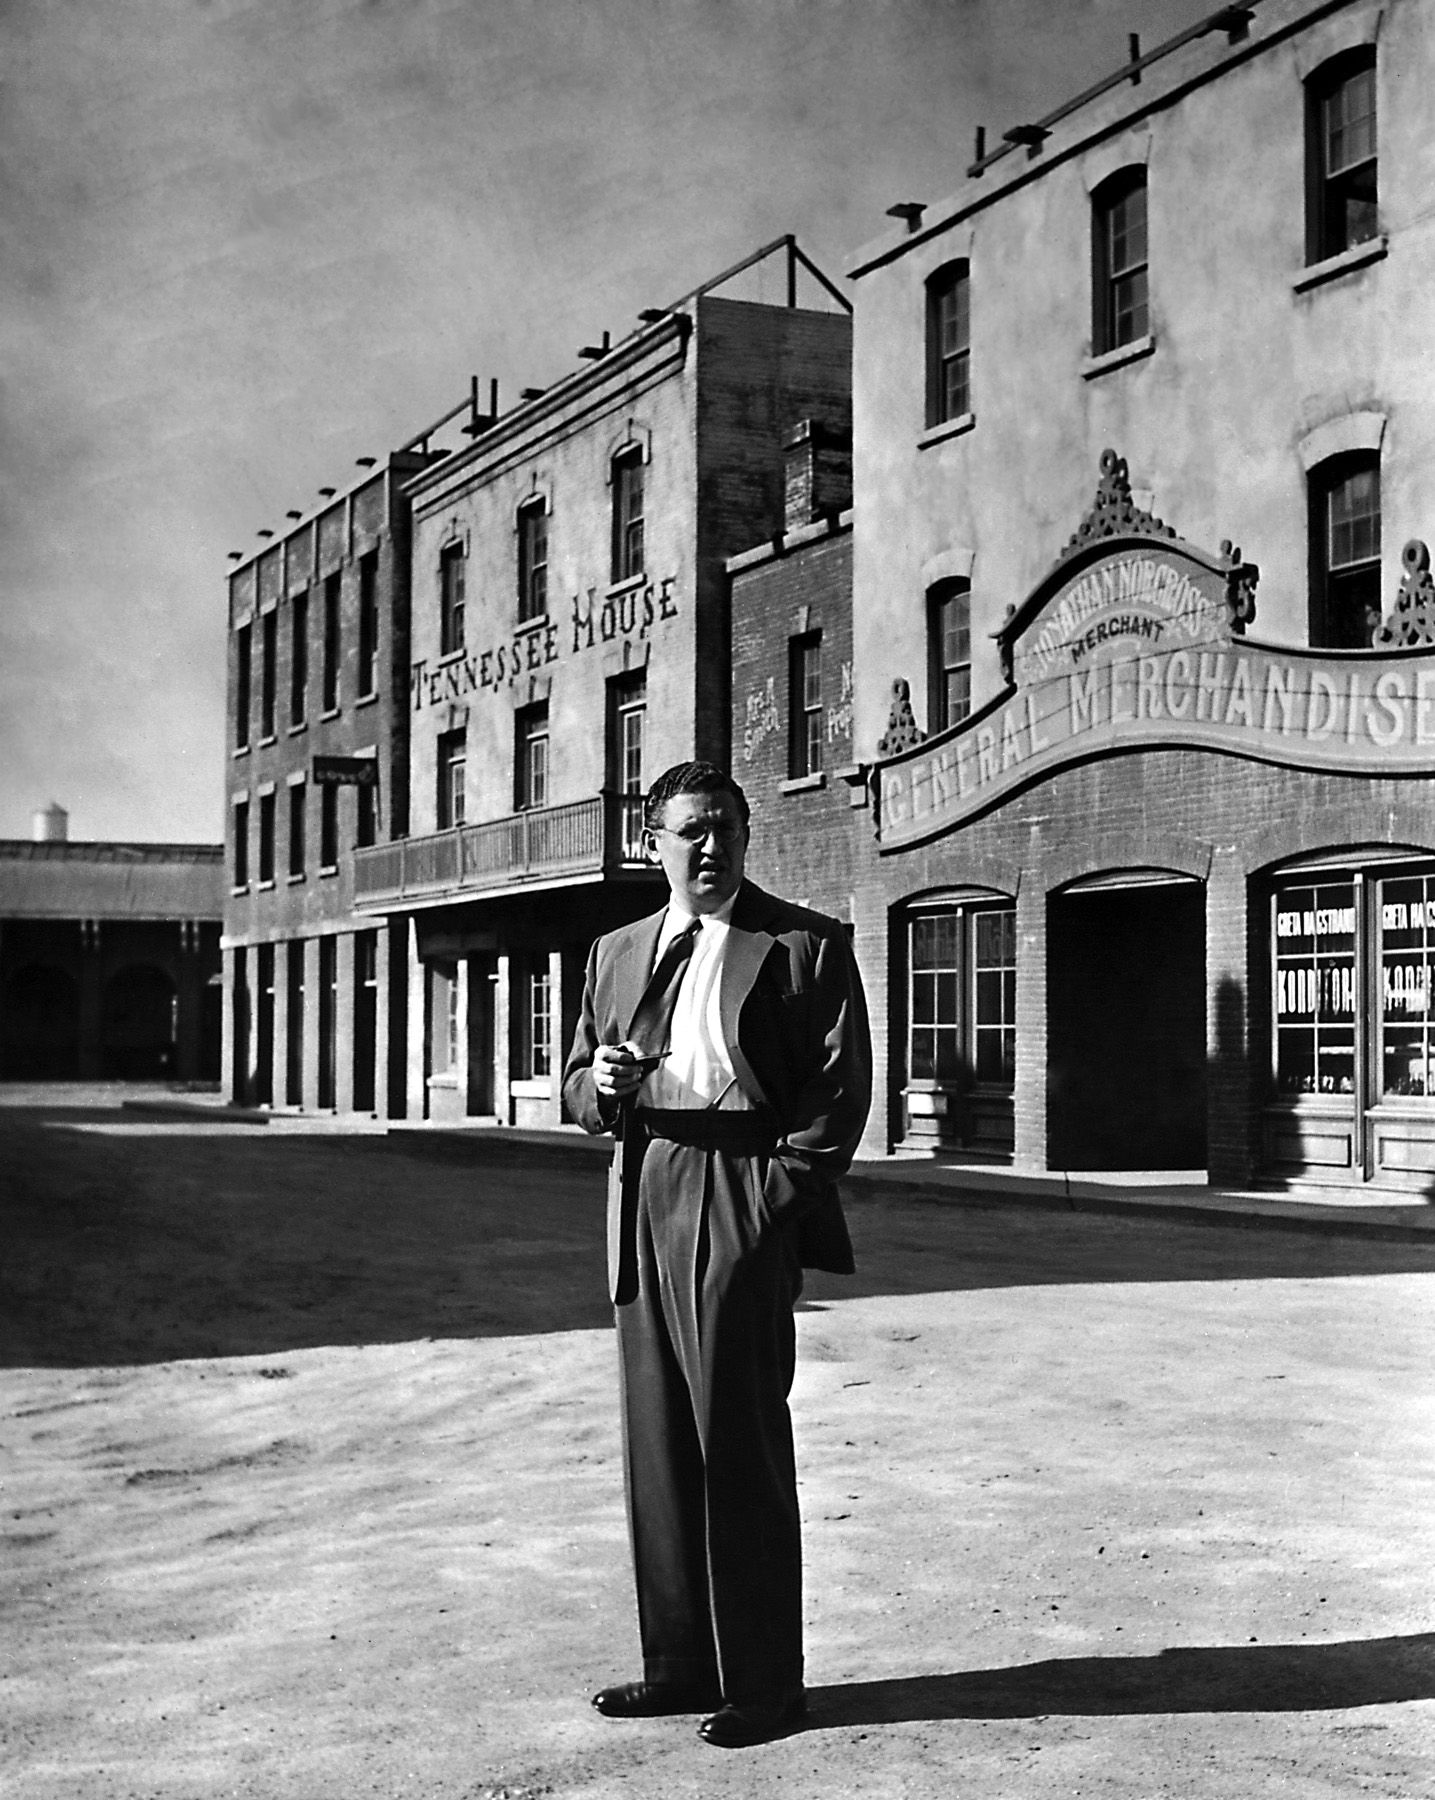 David O. Selznick on the set of Gone with the Wind (1939)